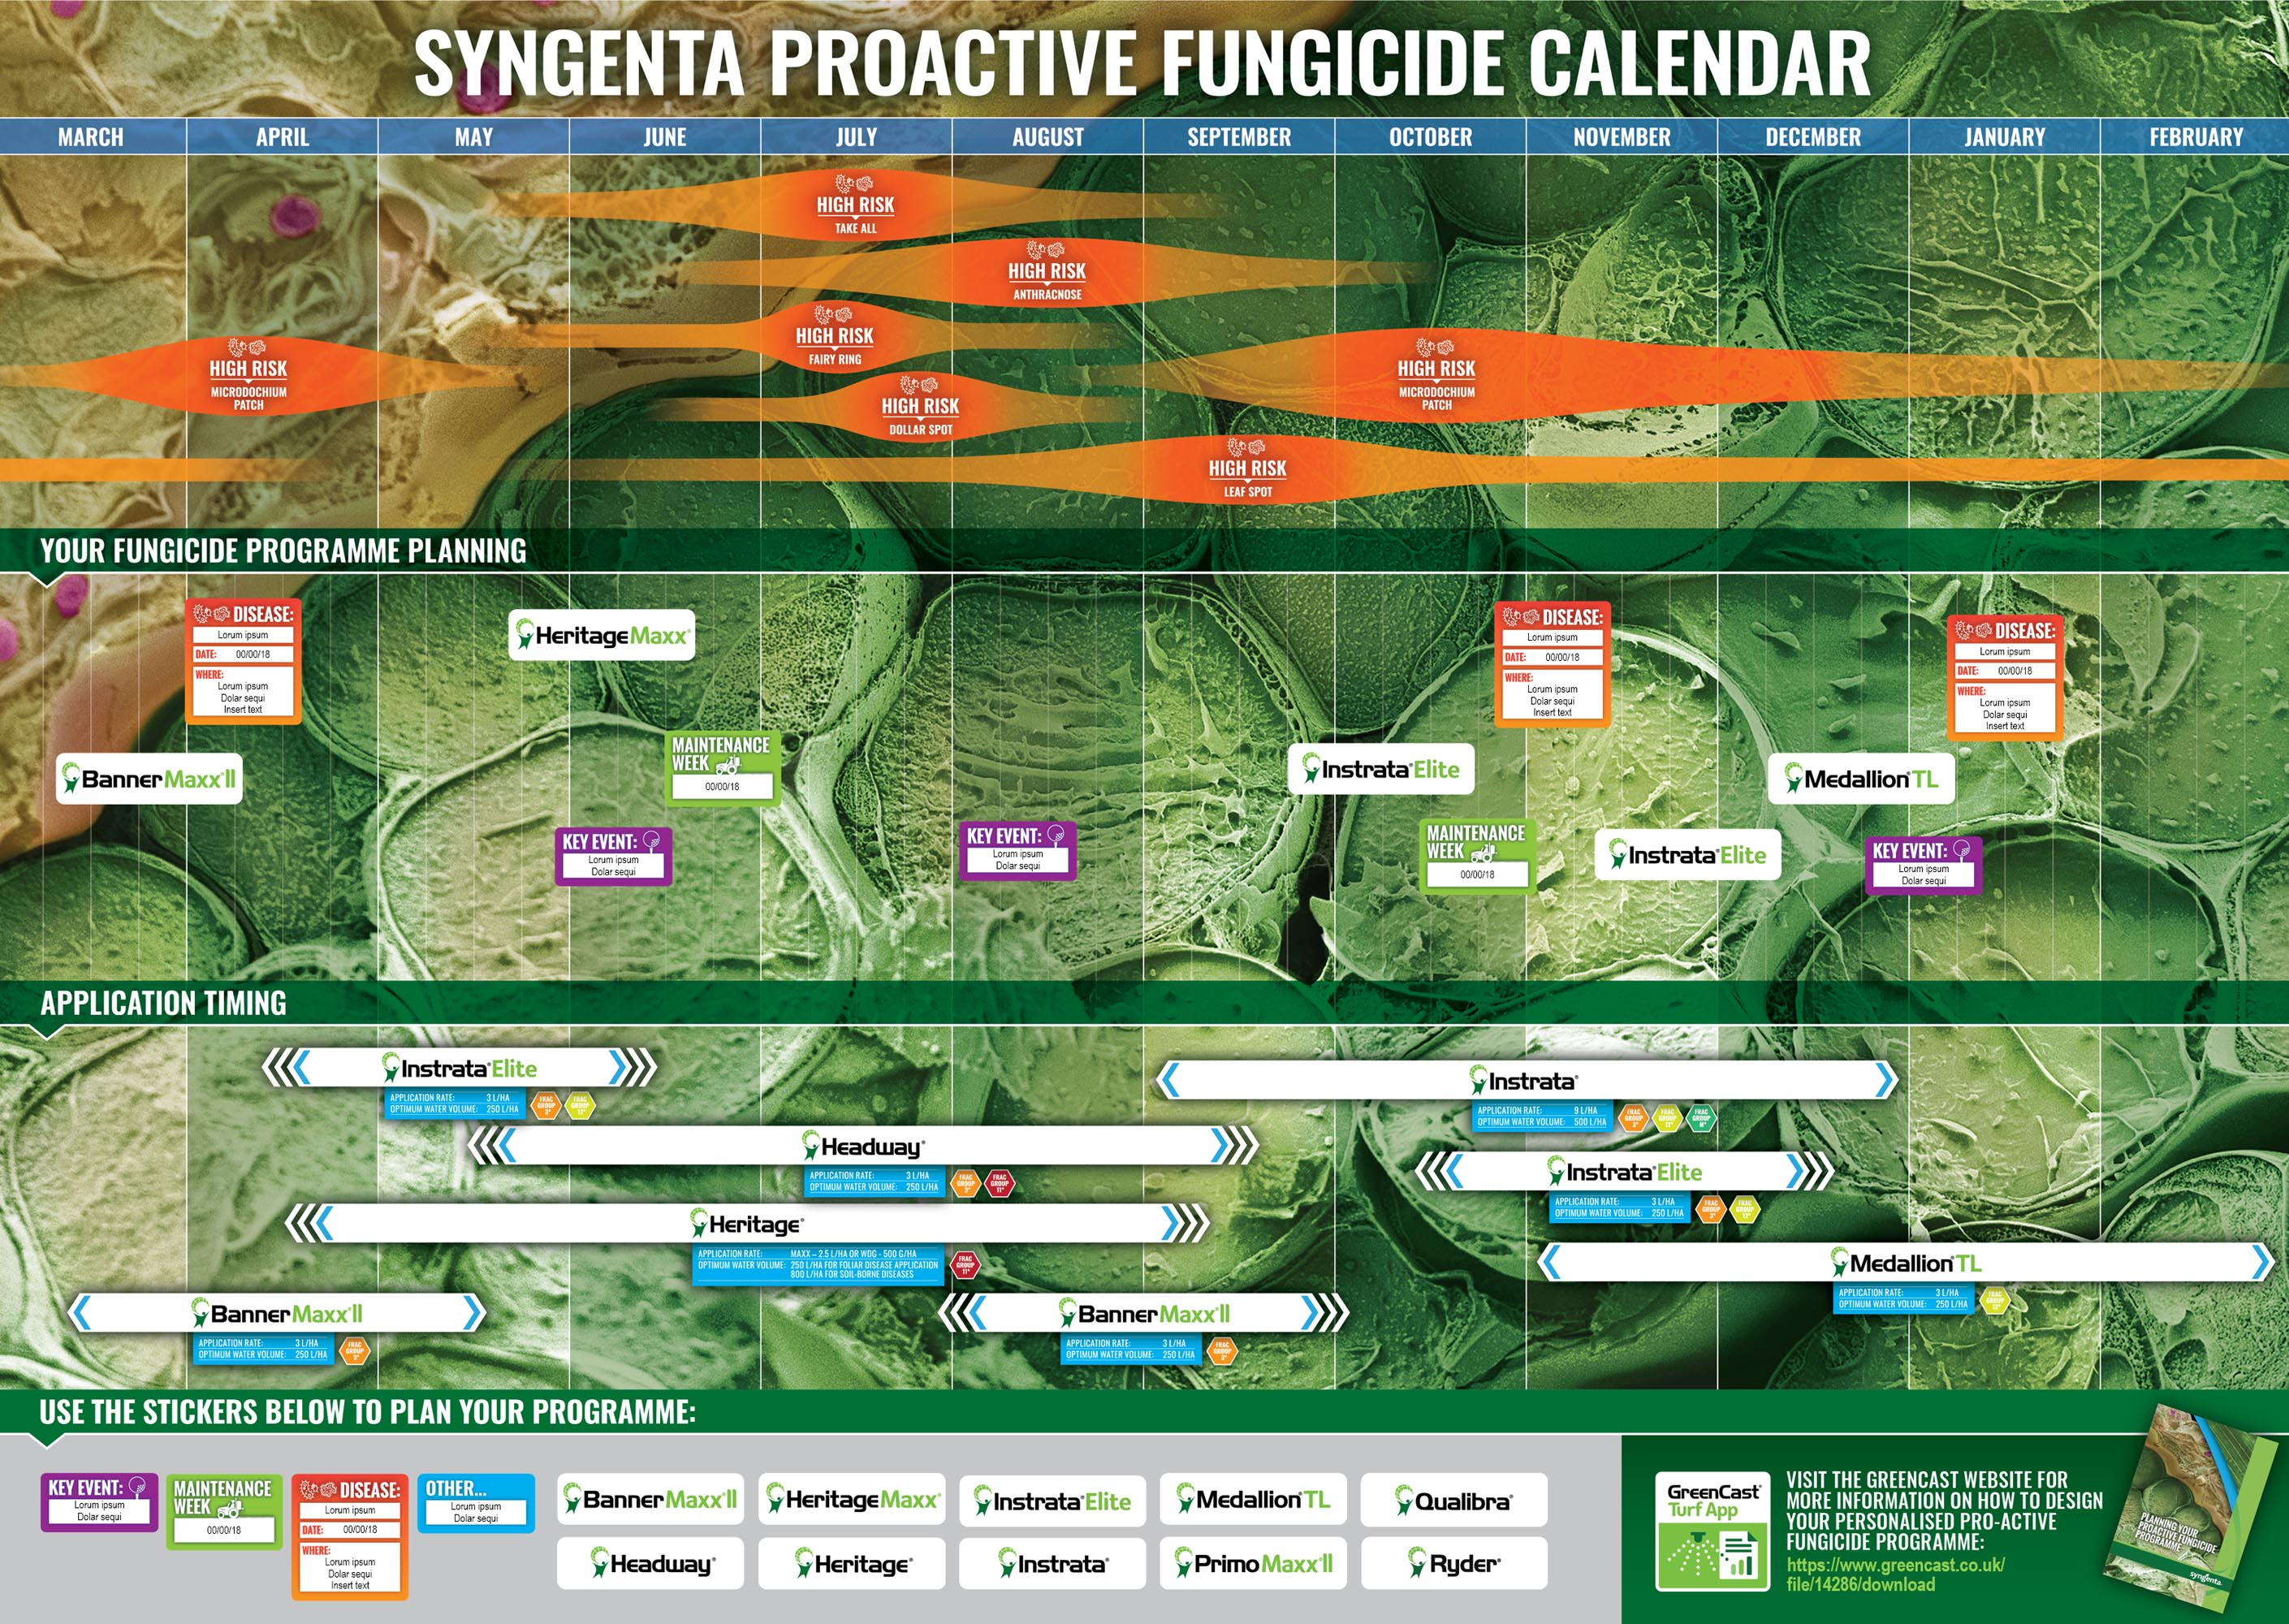 Digital download to plan your fungicide calendar